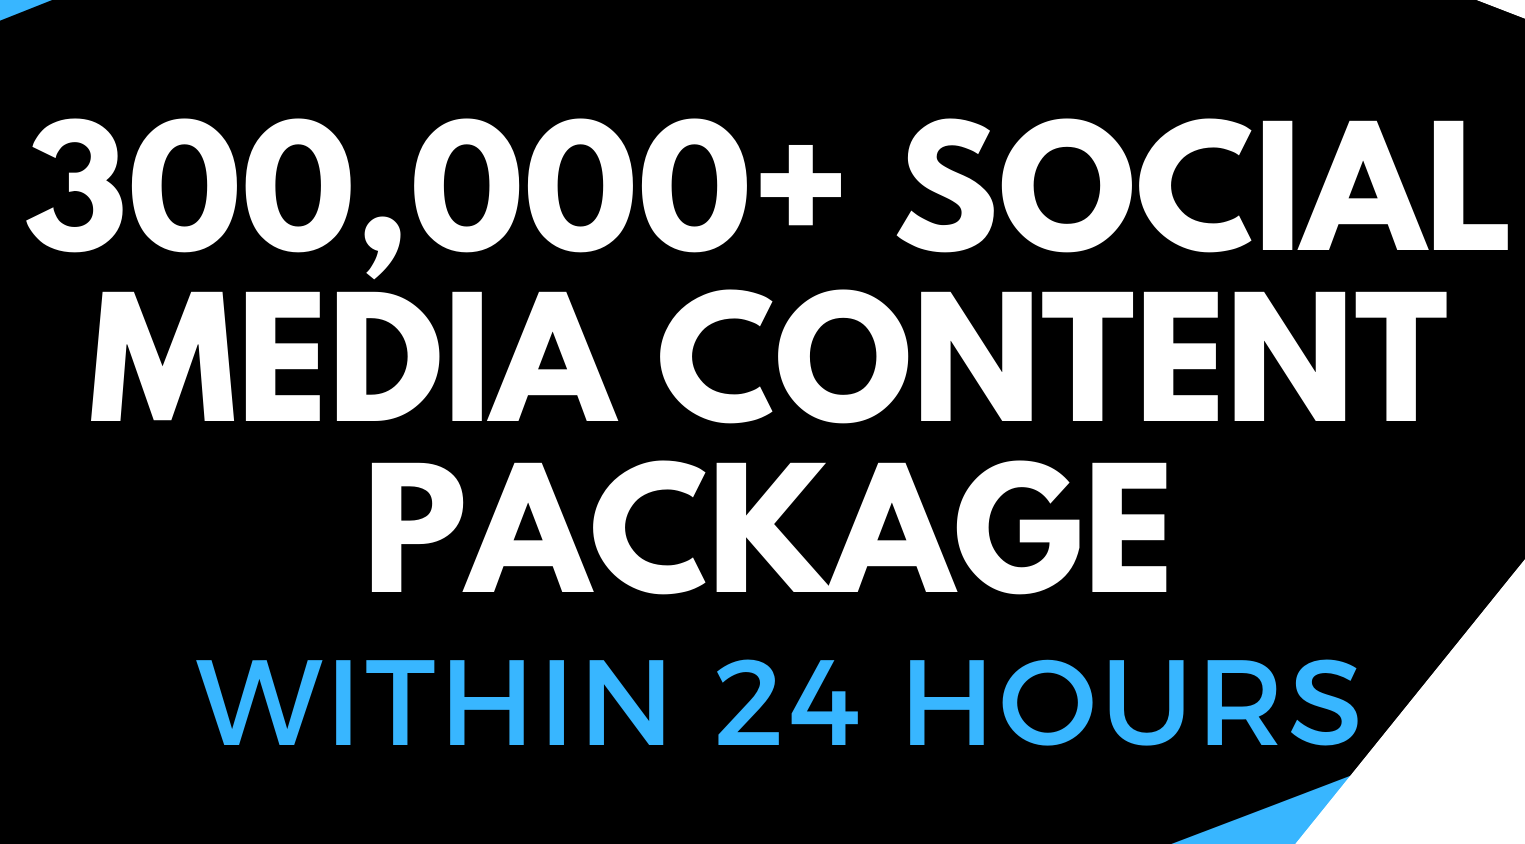 300,000 Motivational images,  quotes,  videos,  fitness,  facts & more content package